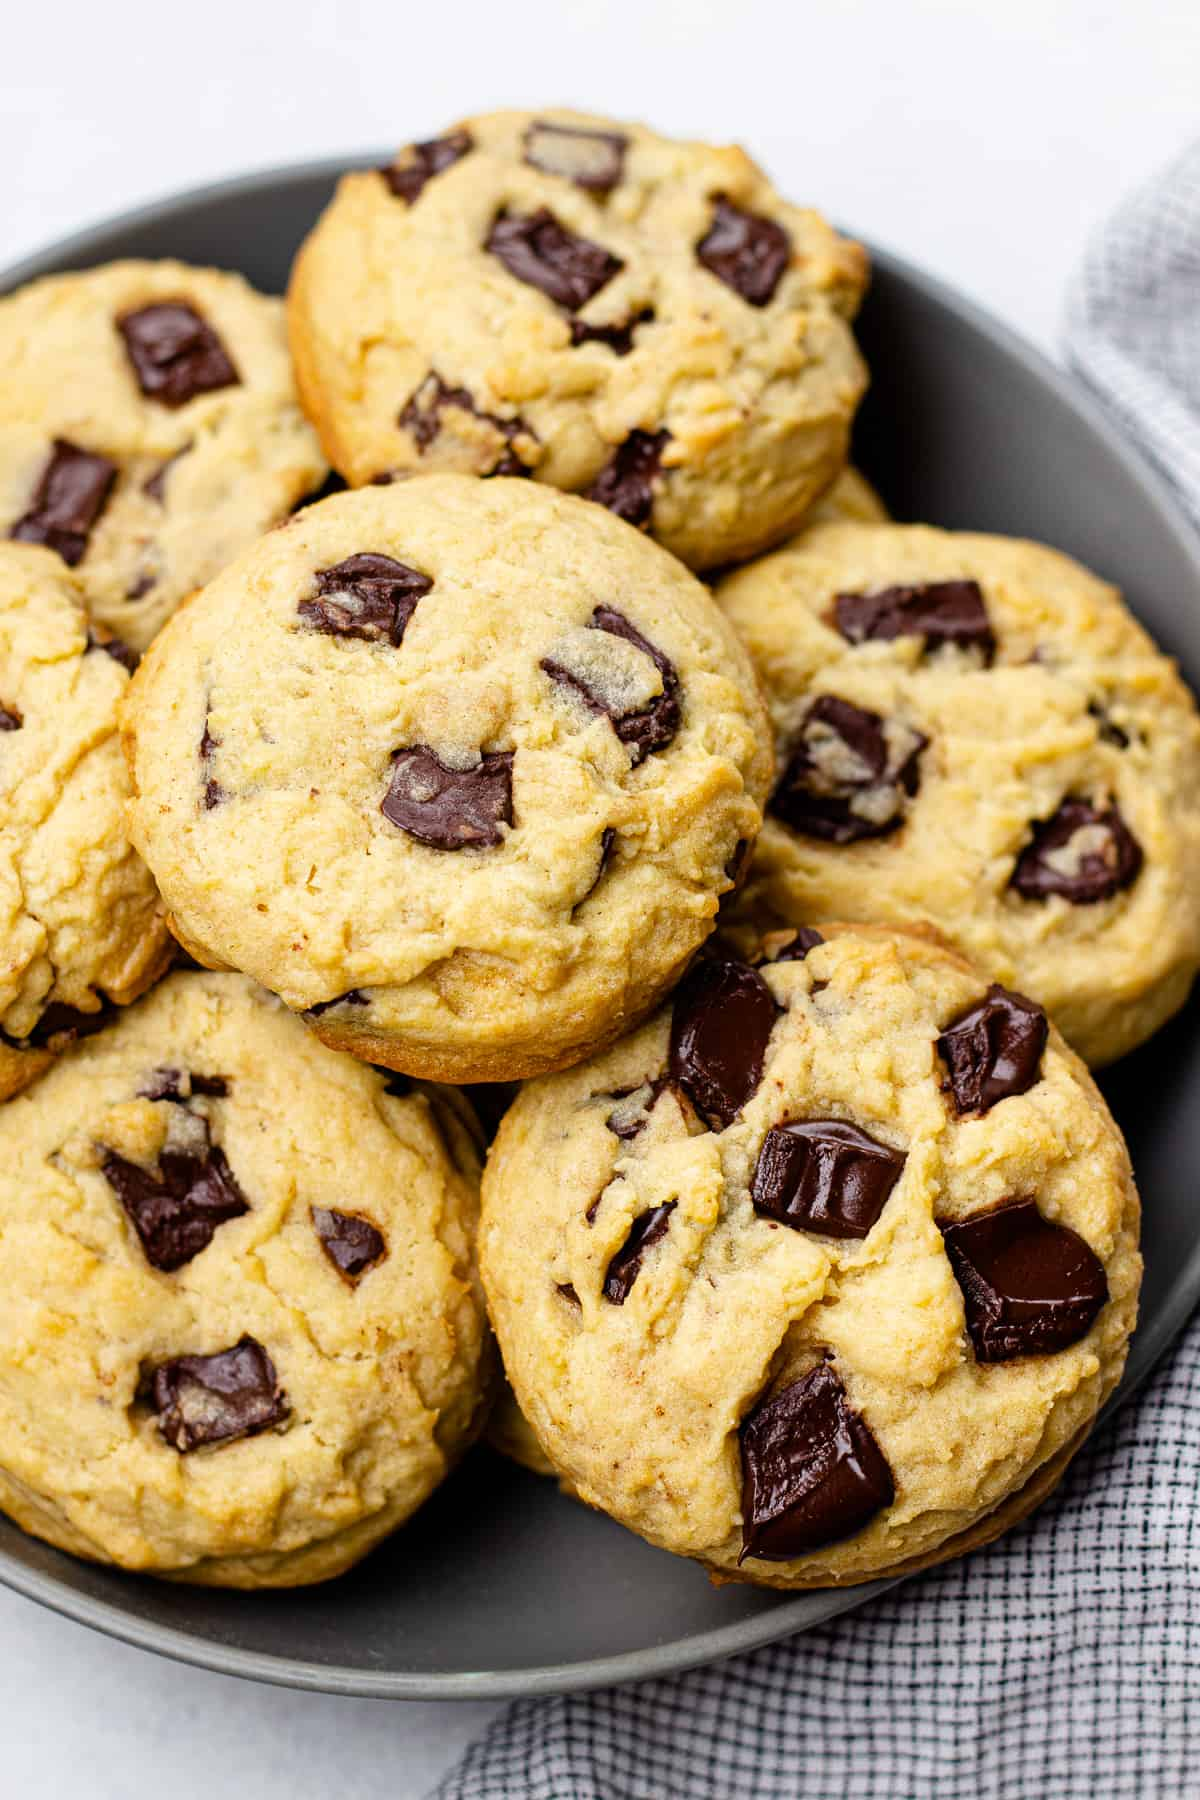 Chocolate Chip Cookies on a grey plate.